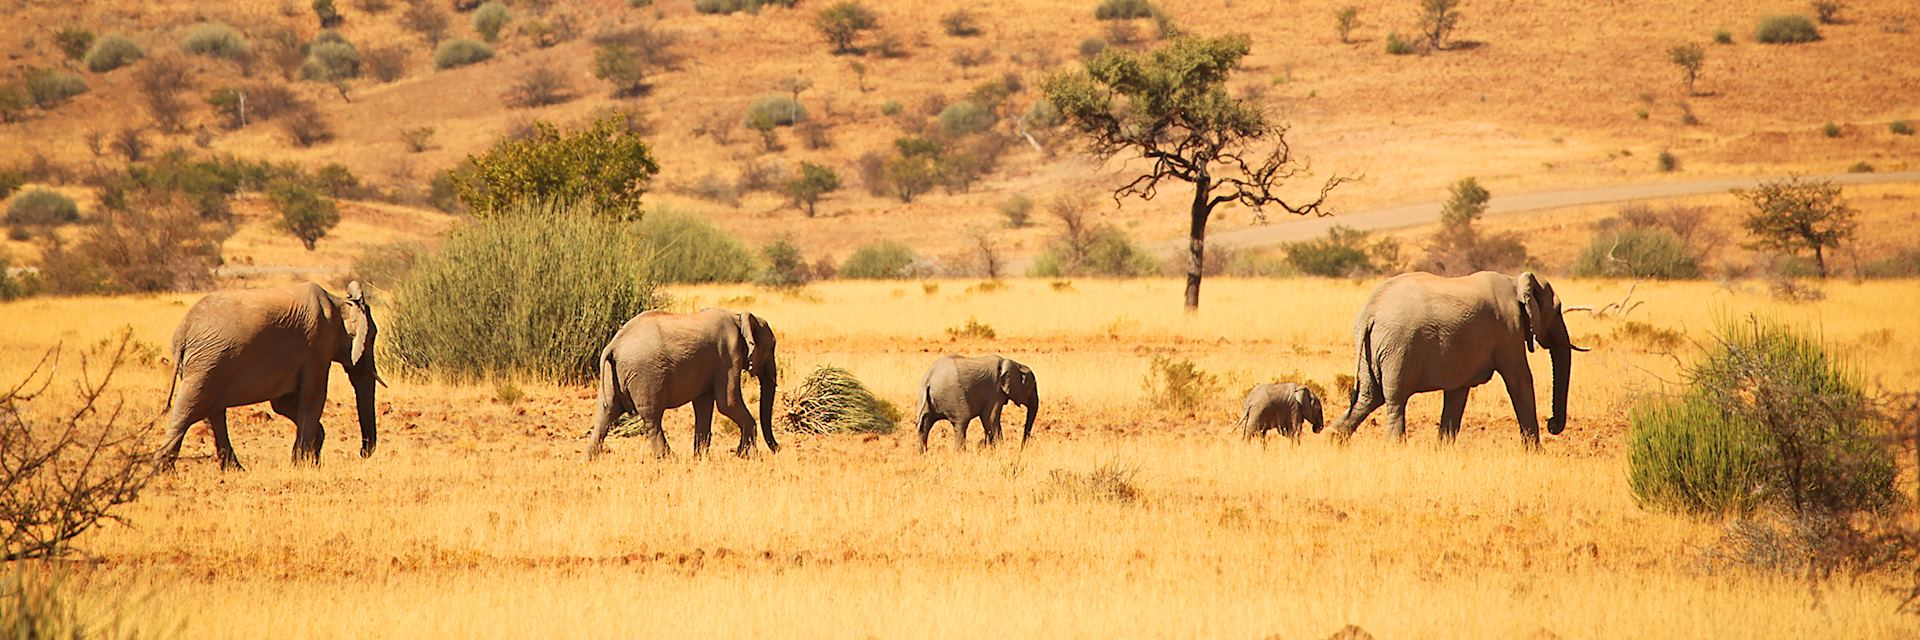 Family of elephants, Namibia